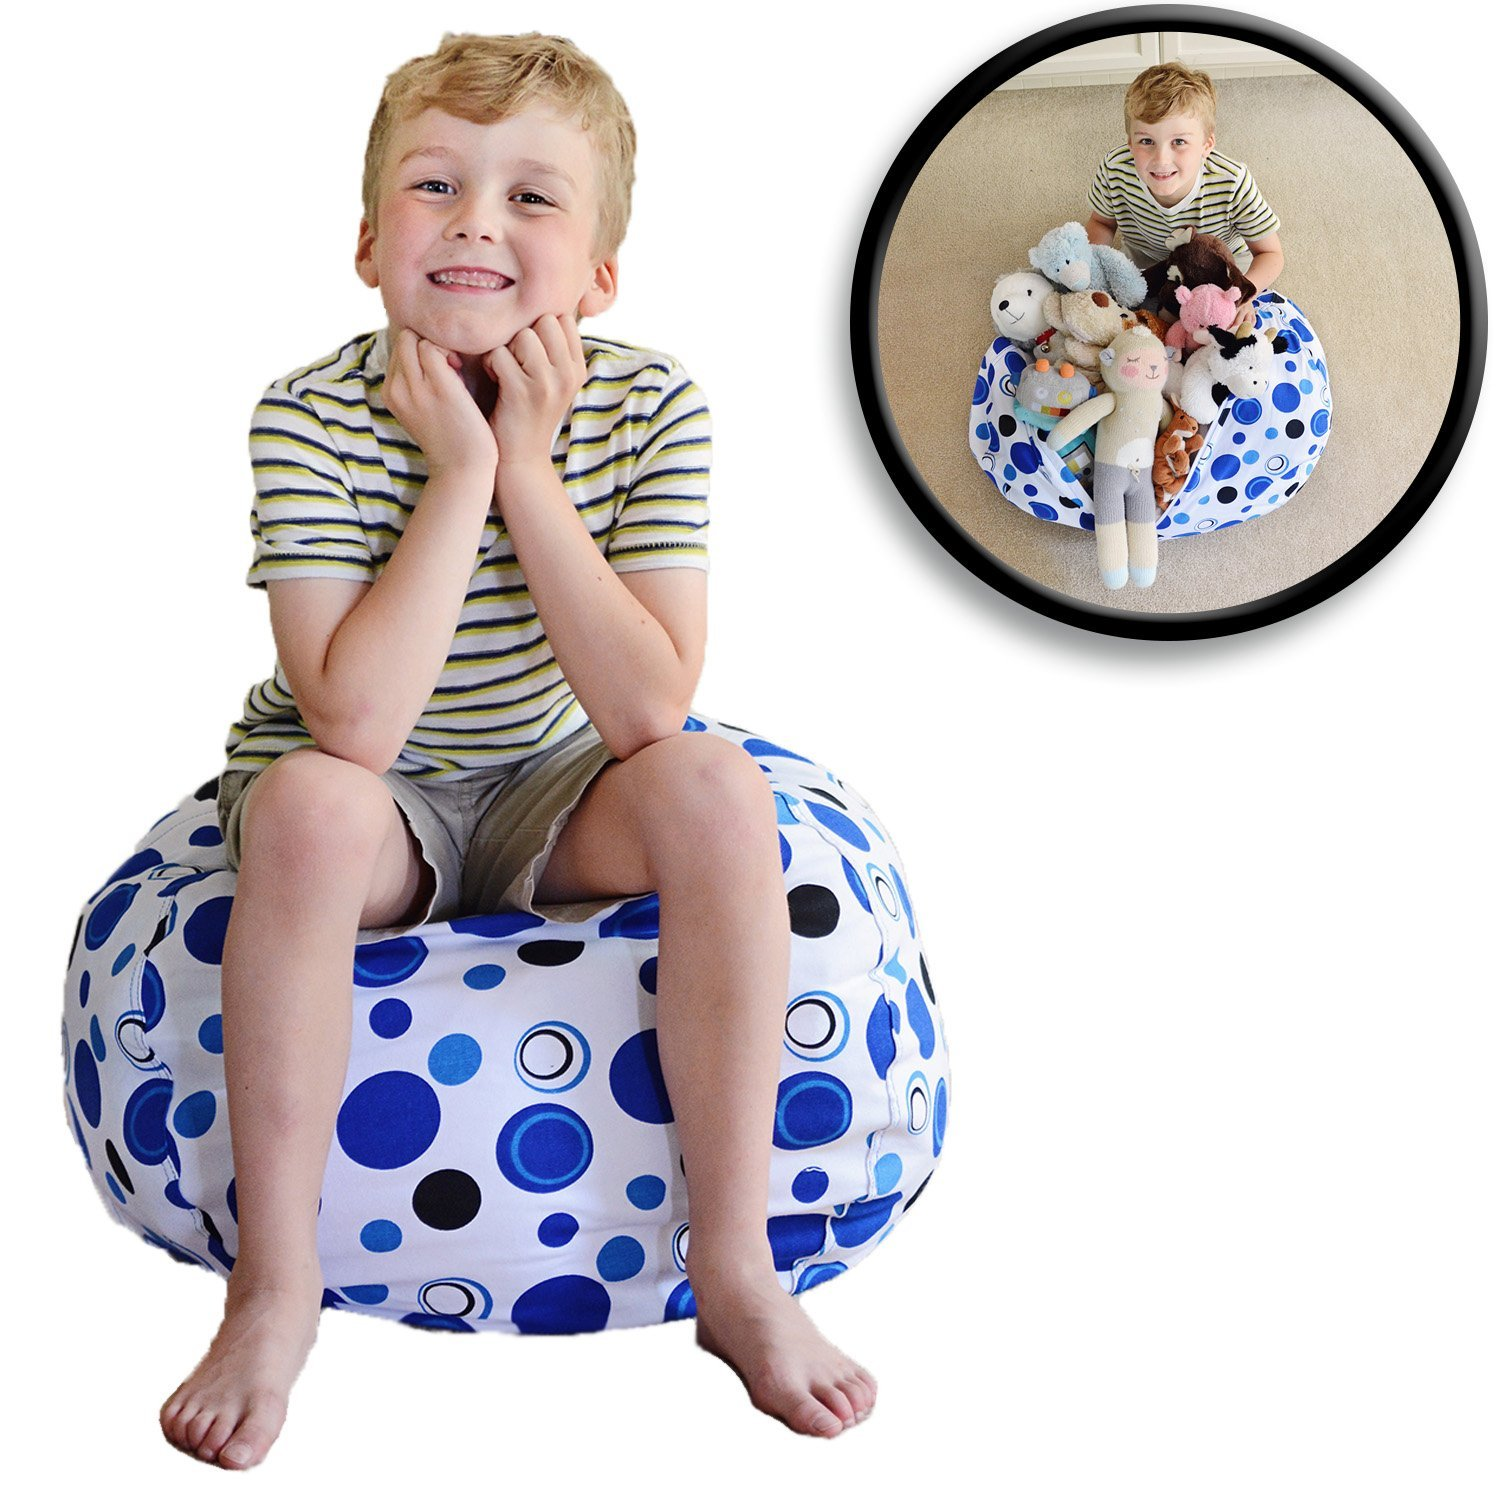 "Stuffed Animal Storage Bean Bag Chair - Premium Cotton Canvas - Clean up the Room and Put Those Critters to Work for You! - By Creative QT (27"", Blue Polka Dot)"